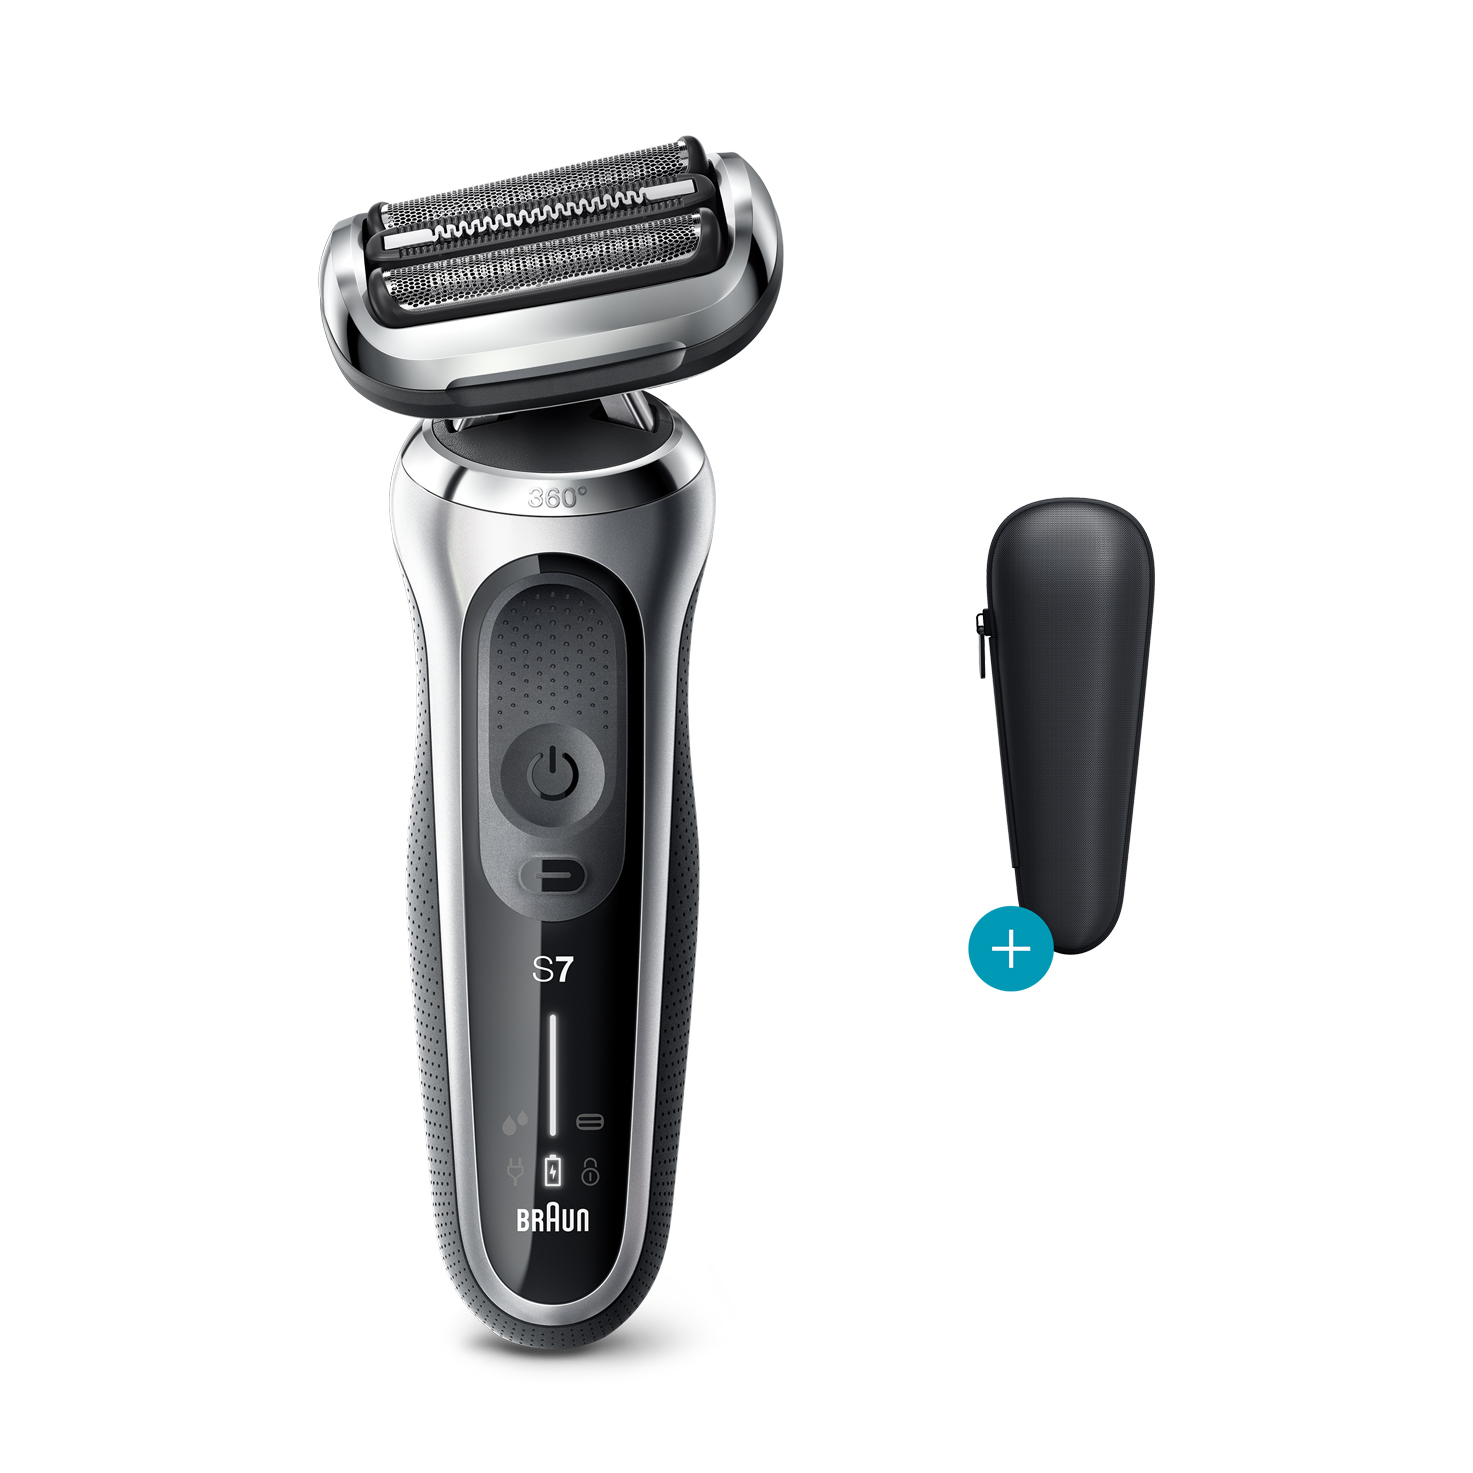 Series 7 70-sS000s shaver